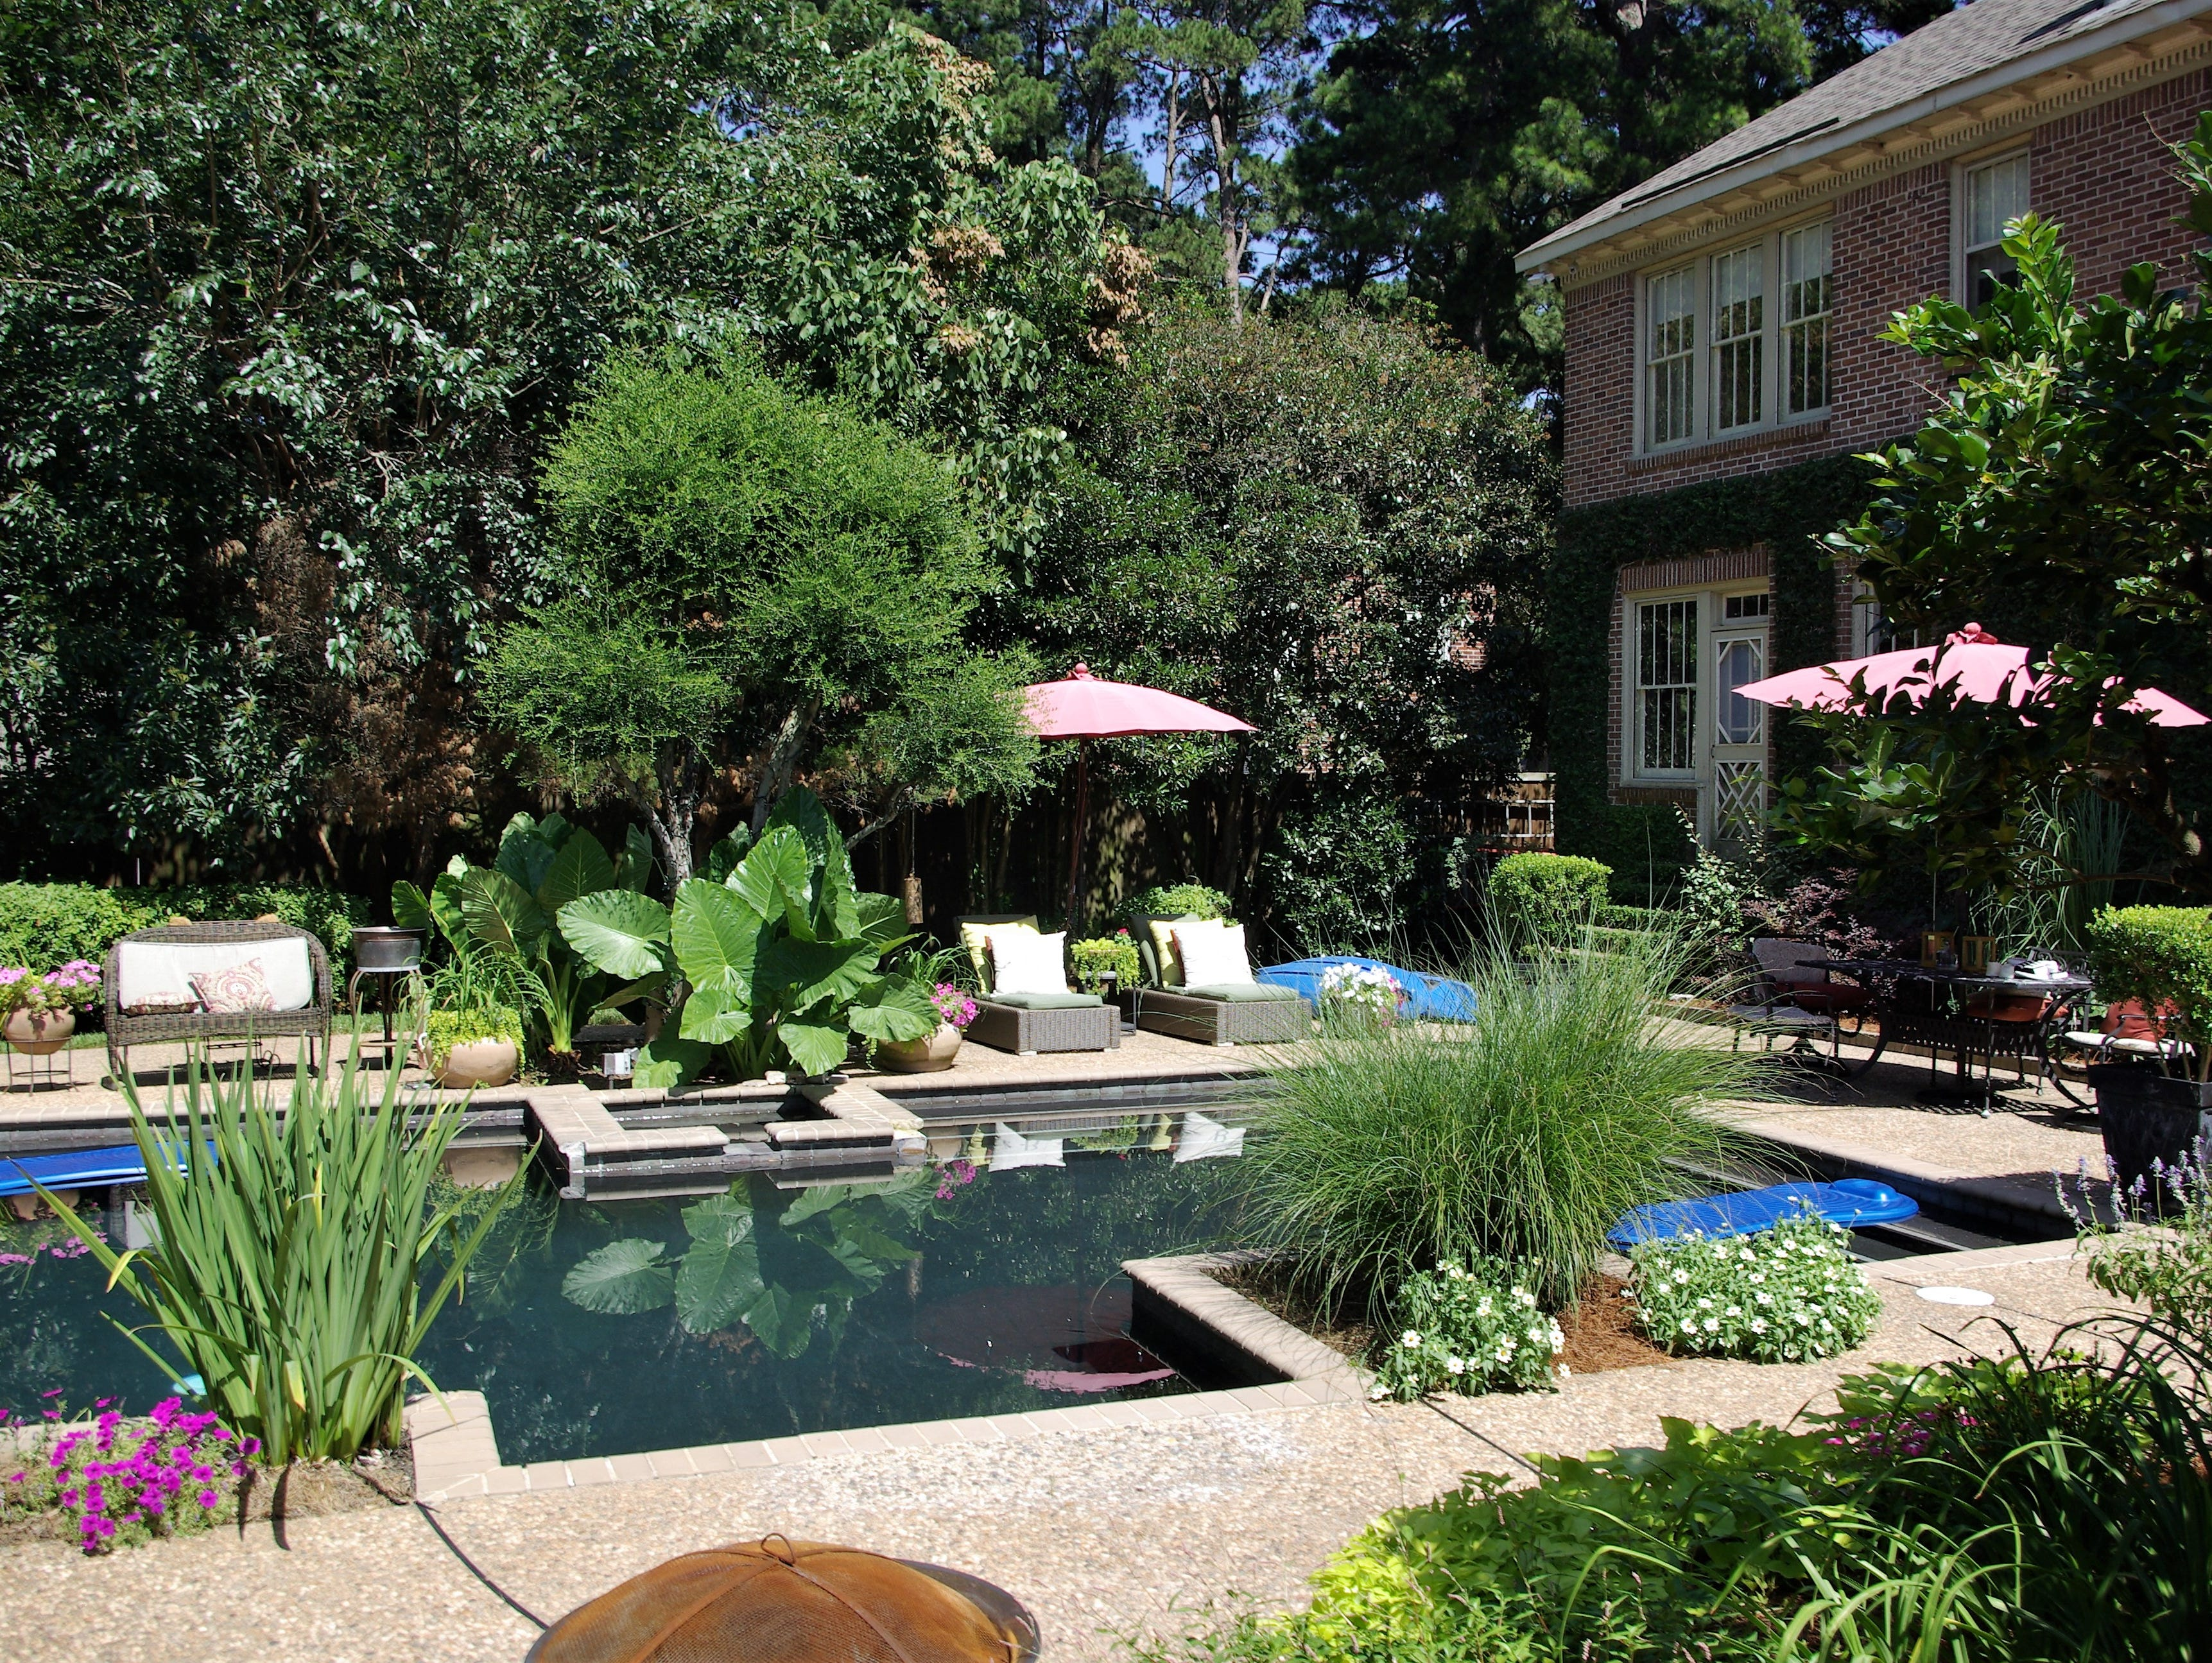 980 Thora Boulevard, Shreveport  Price: $799,000  Details: 4 bedrooms, 4 bathrooms, 3,951 square feet  Special features: Historic South Highlands home renovated on a corner lot, detached pool house.   Contact: Elizabeth Holtsclaw, 560-5693